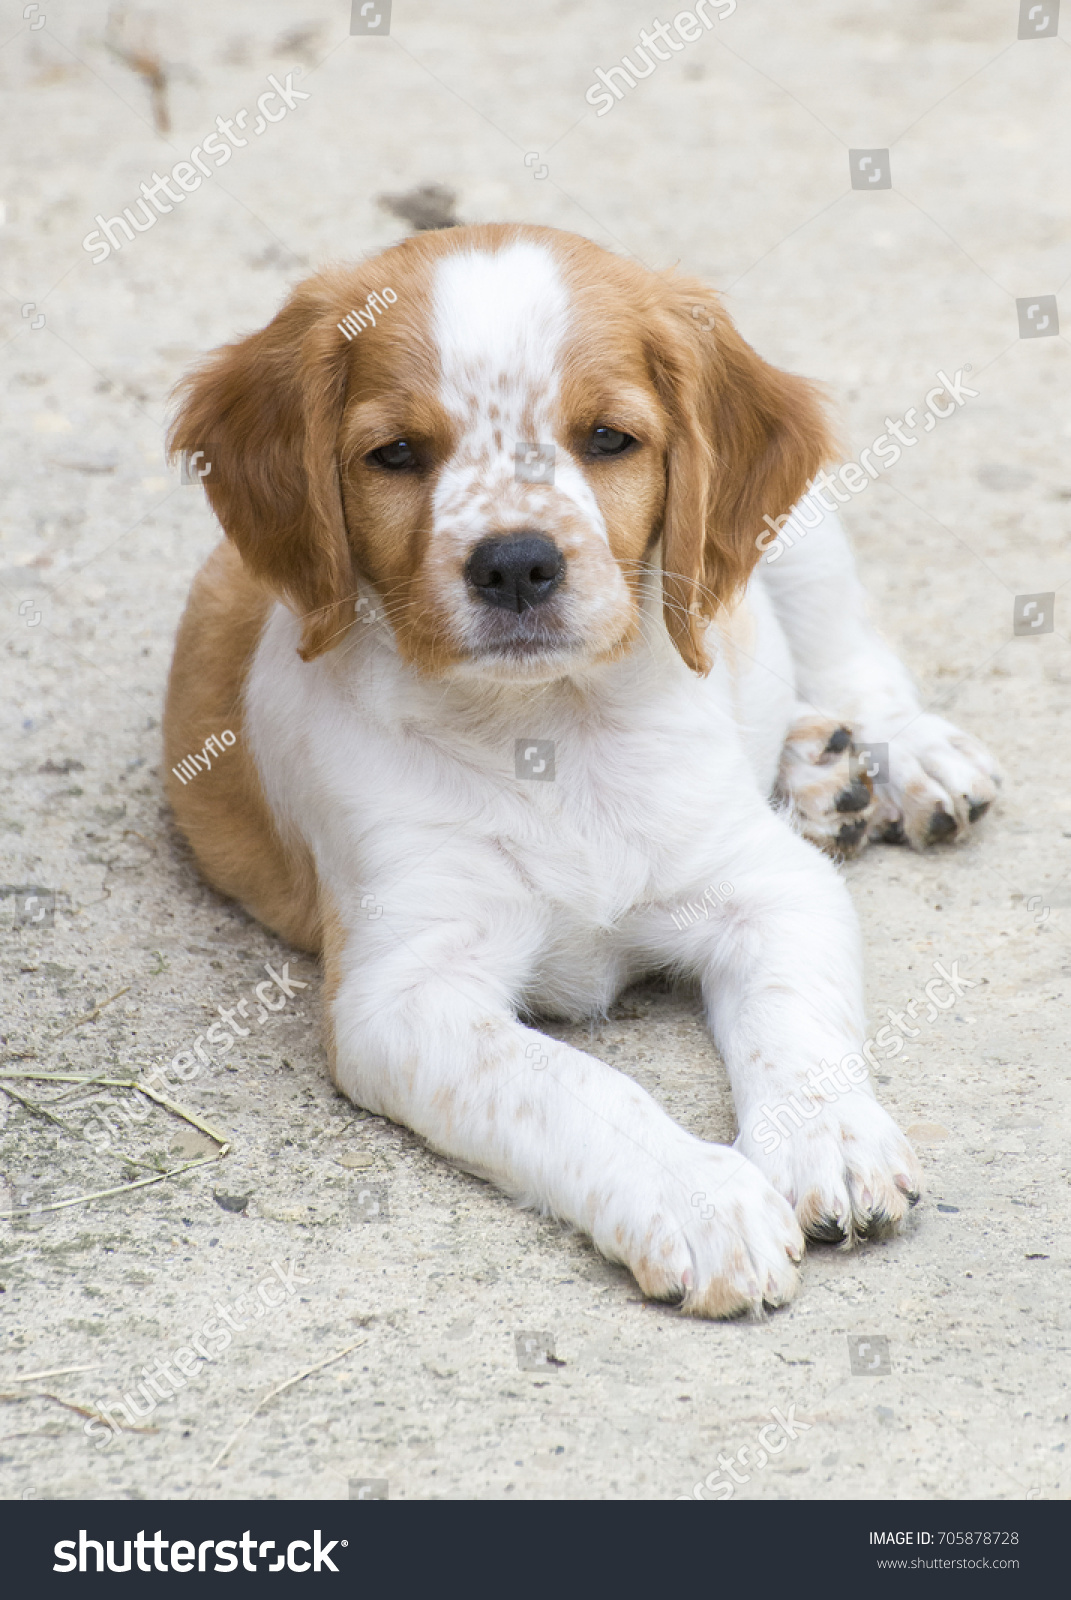 French Brittany Spaniel Puppy Laying Down Stock Photo Edit Now 705878728